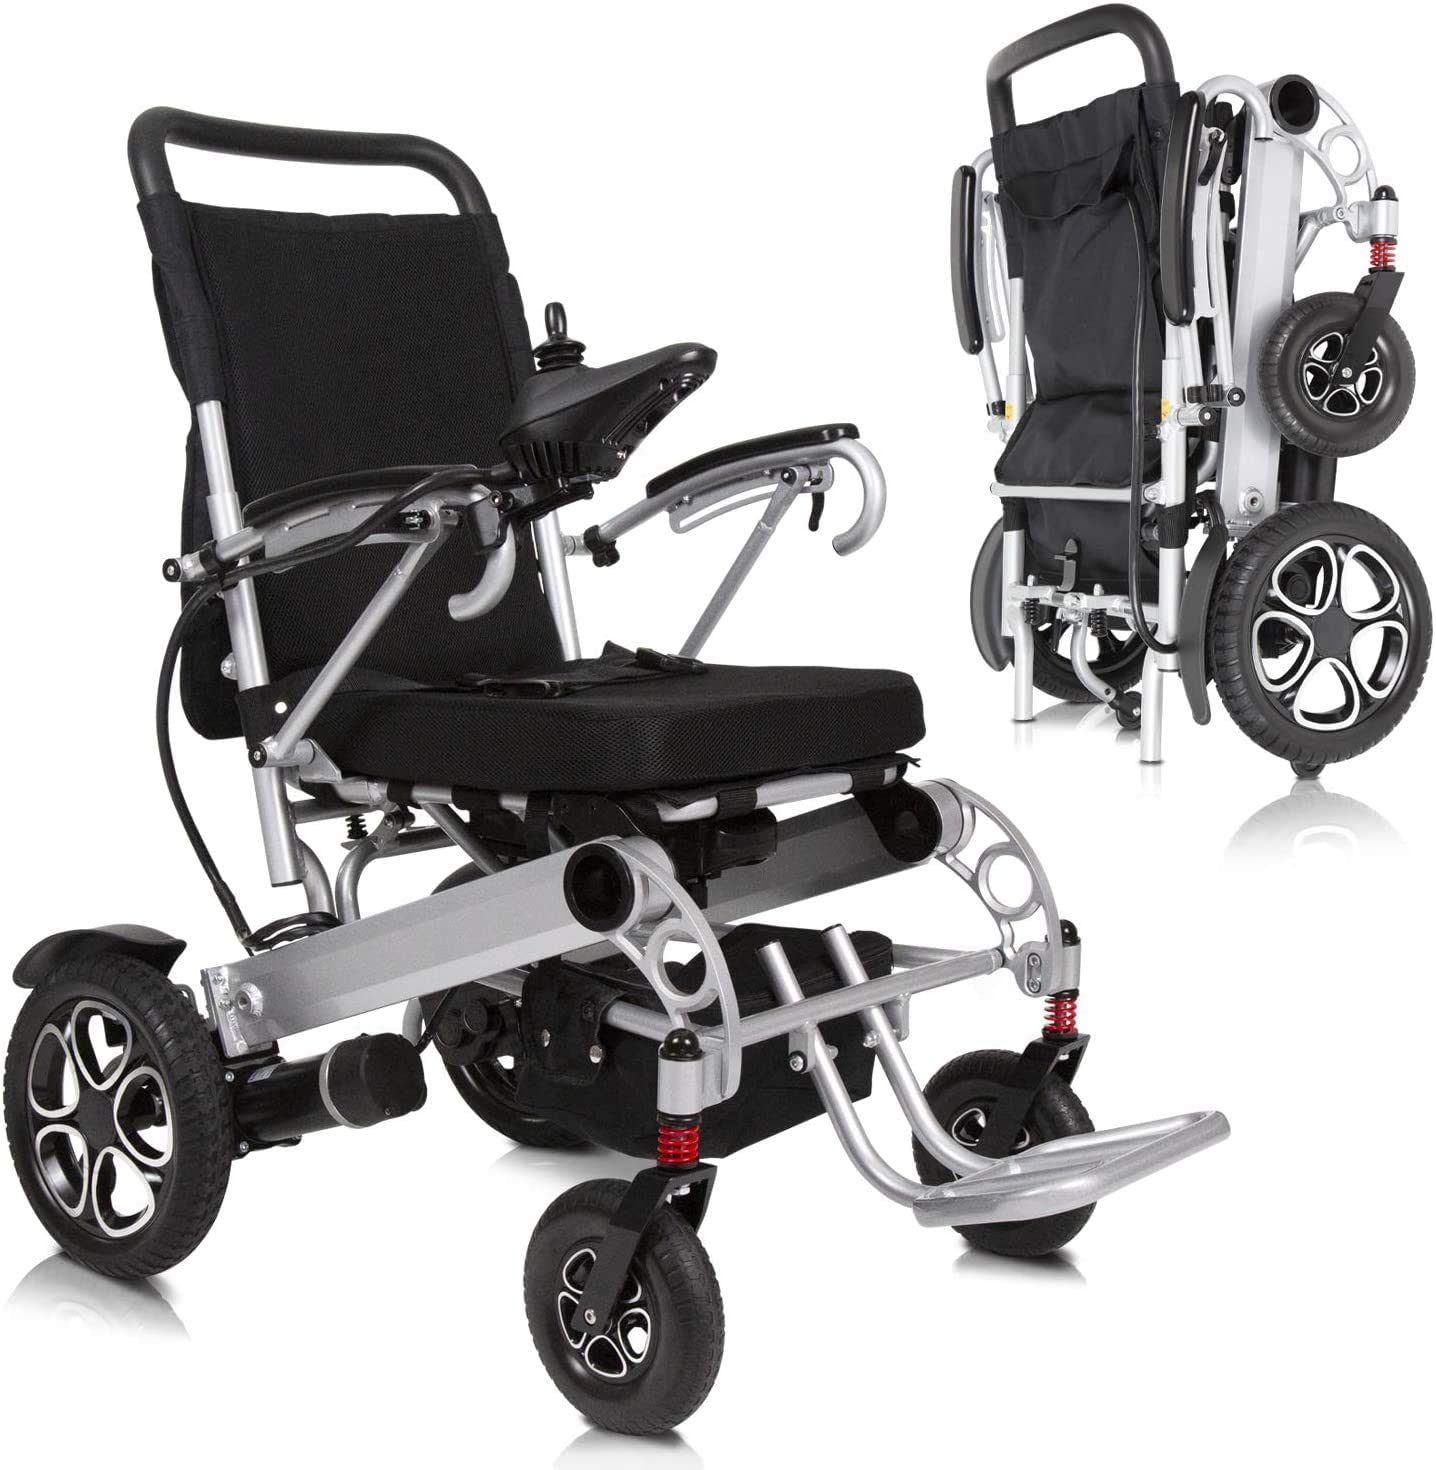 XKRSBS Mobility Electric Wheelchair - Power Transport Chair - Lightweight, Foldable, Heavy Duty for Compact Airplane Travel - Motorized Long Range Large Dual Motor